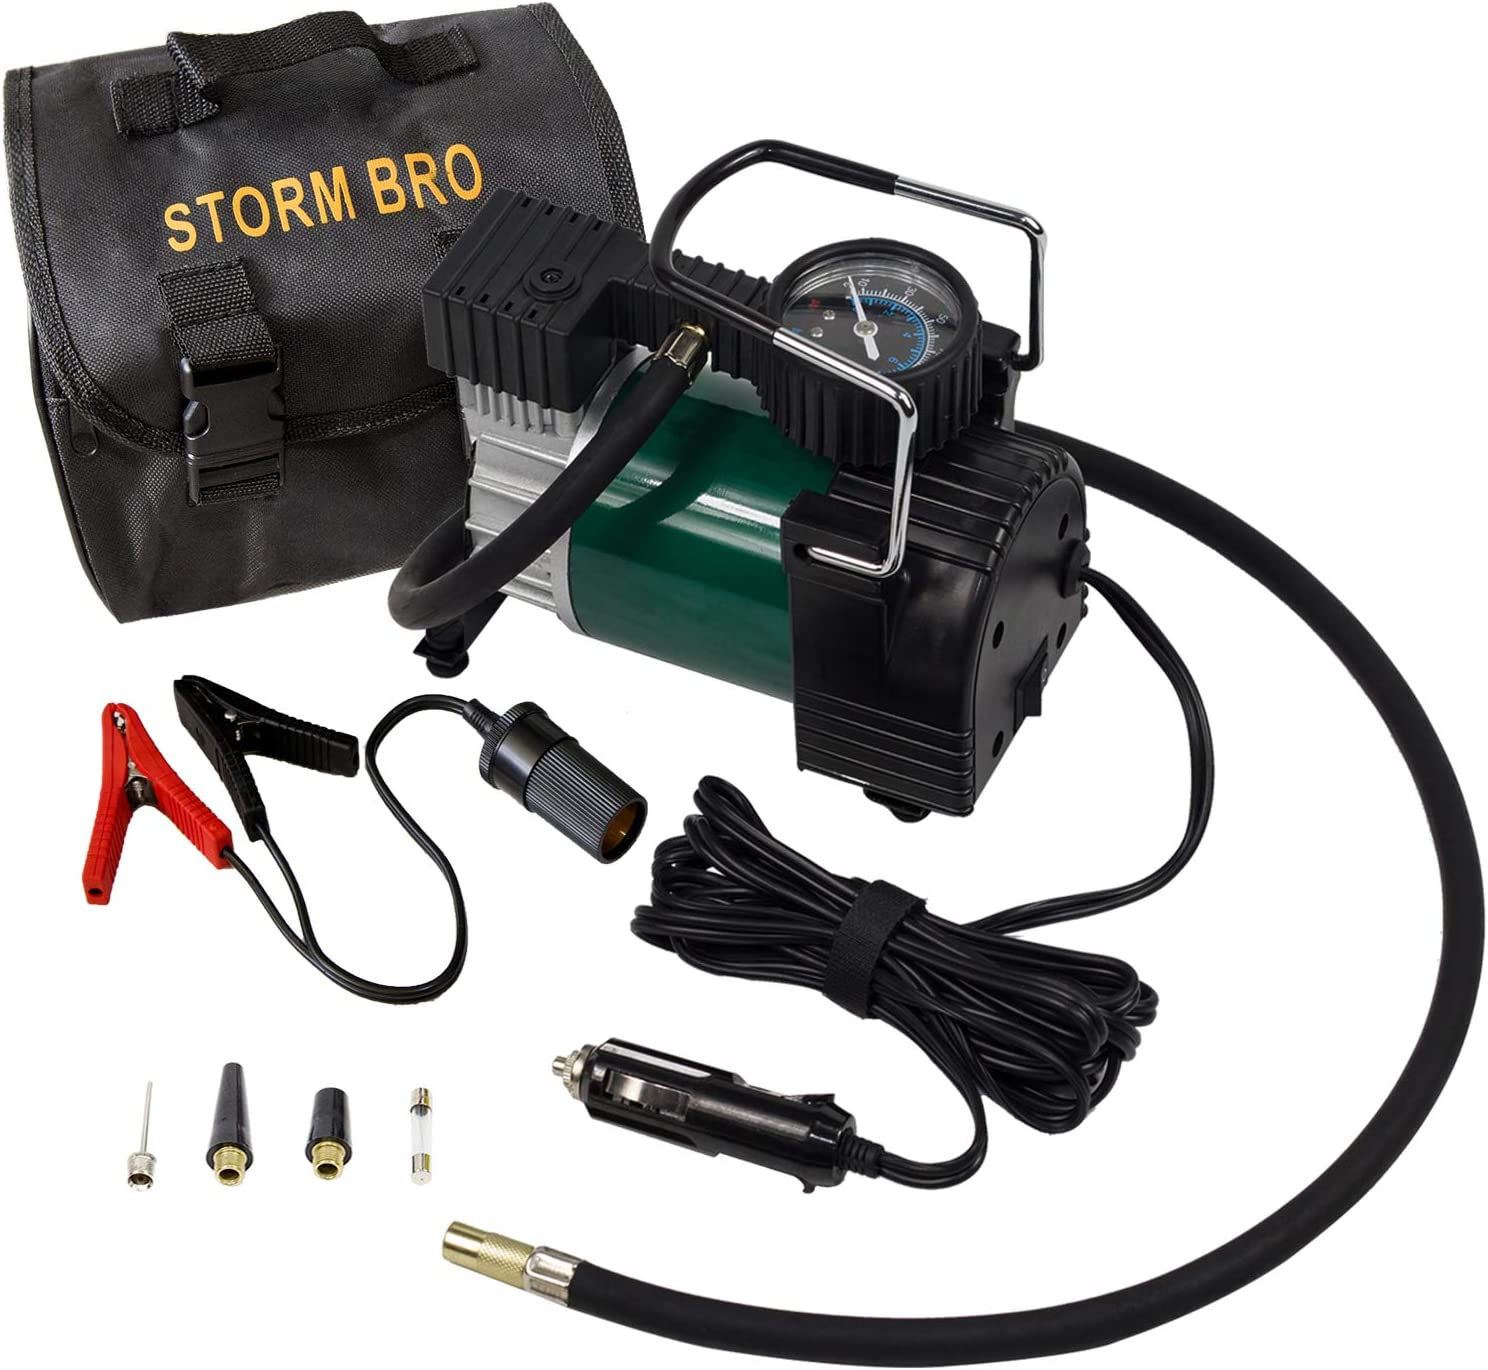 STORM BRO Portable Air Compressor Tire Pump 12V DC 30mm Cylinder and 150PSI Backlight Display Tire Inflator with Carrybag and Transfer Battery Clip for Auto,Trucks,Bicycles,Balls